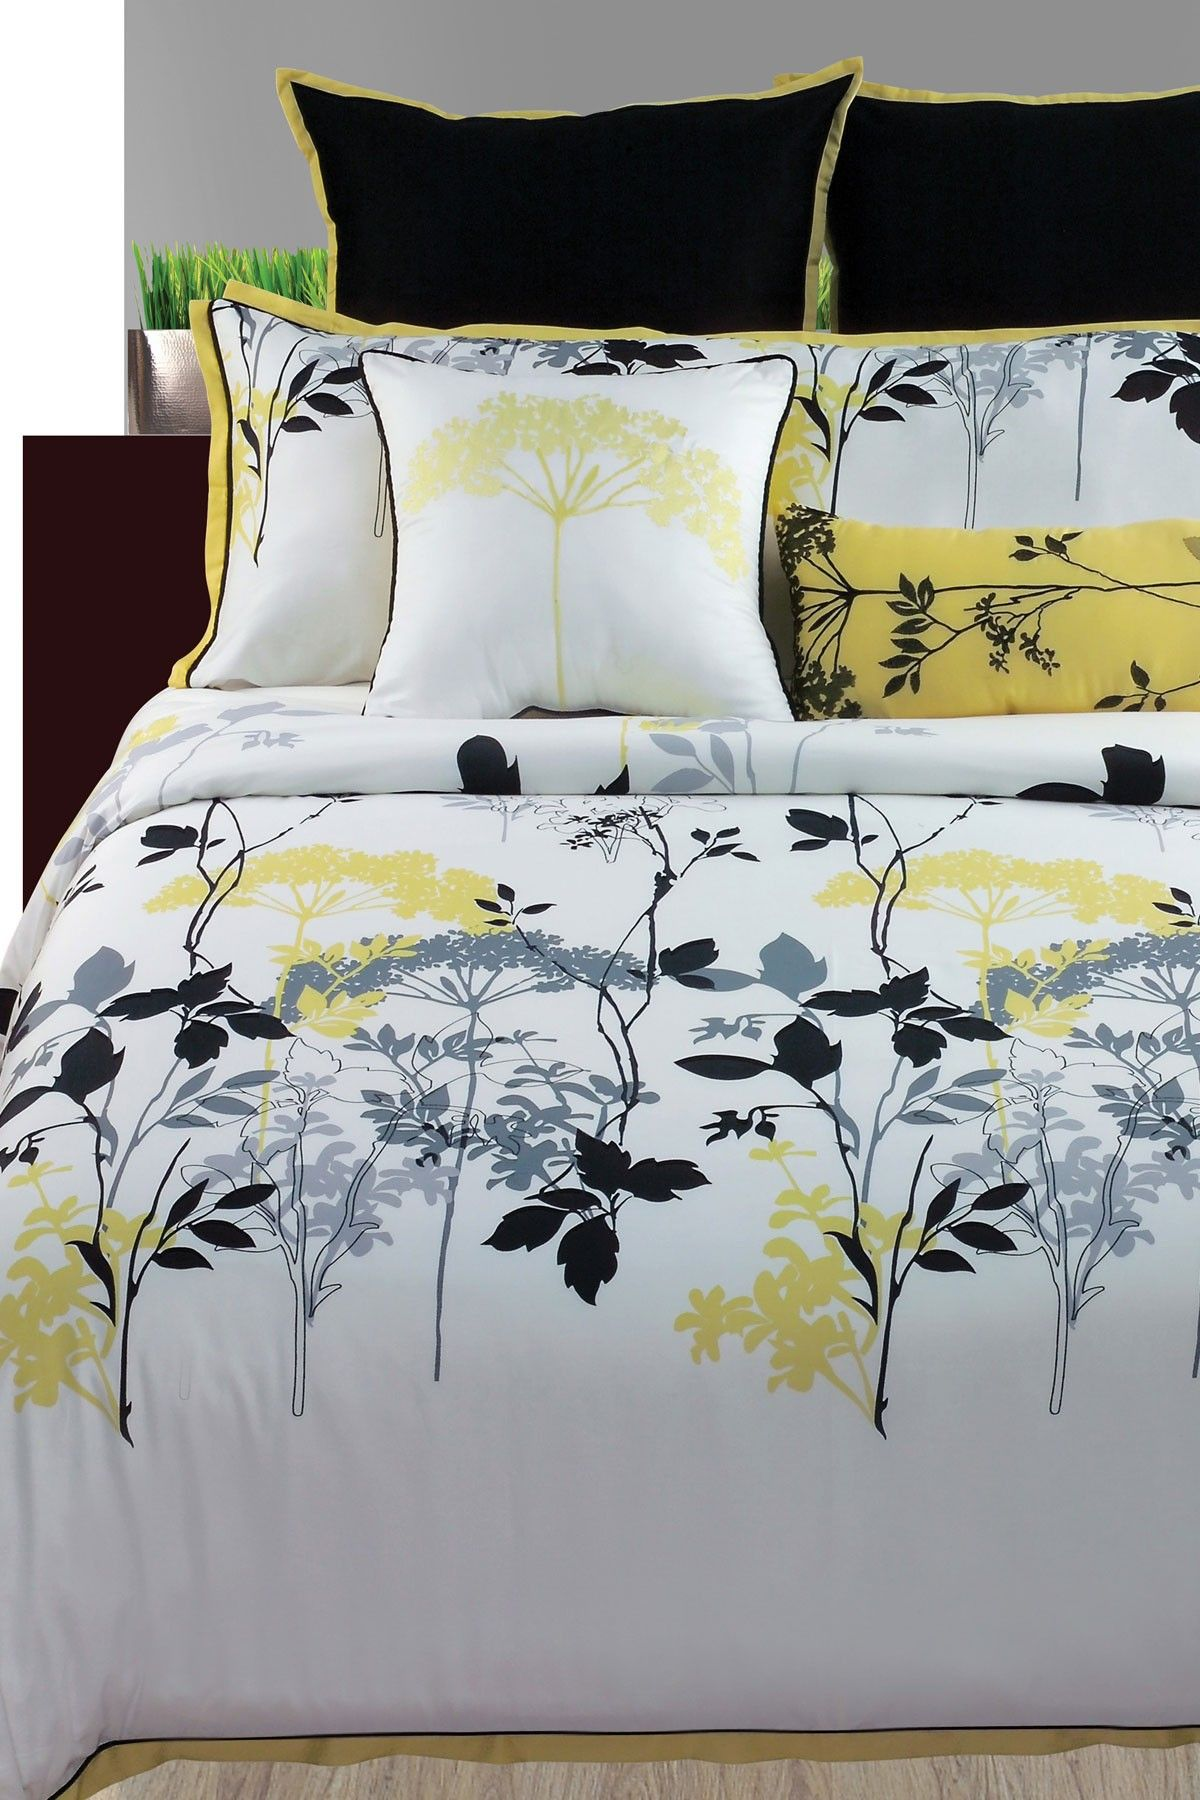 Angelo Home Gramercy Park 4 Piece Queen Comforter Set